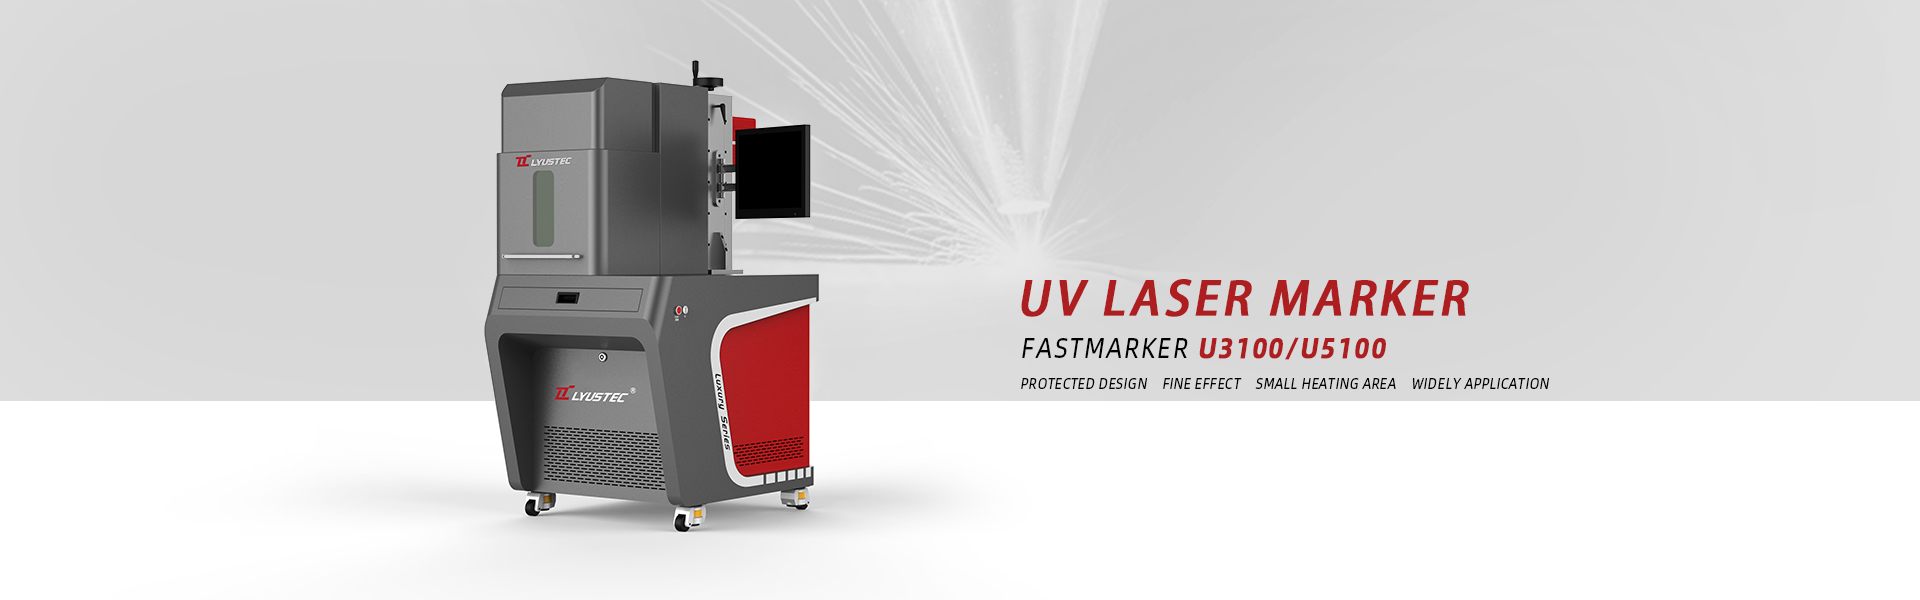 Laser Cutting Machine,Laser Engraving Machine,Fiber Laser Marking Machine Manufacturers